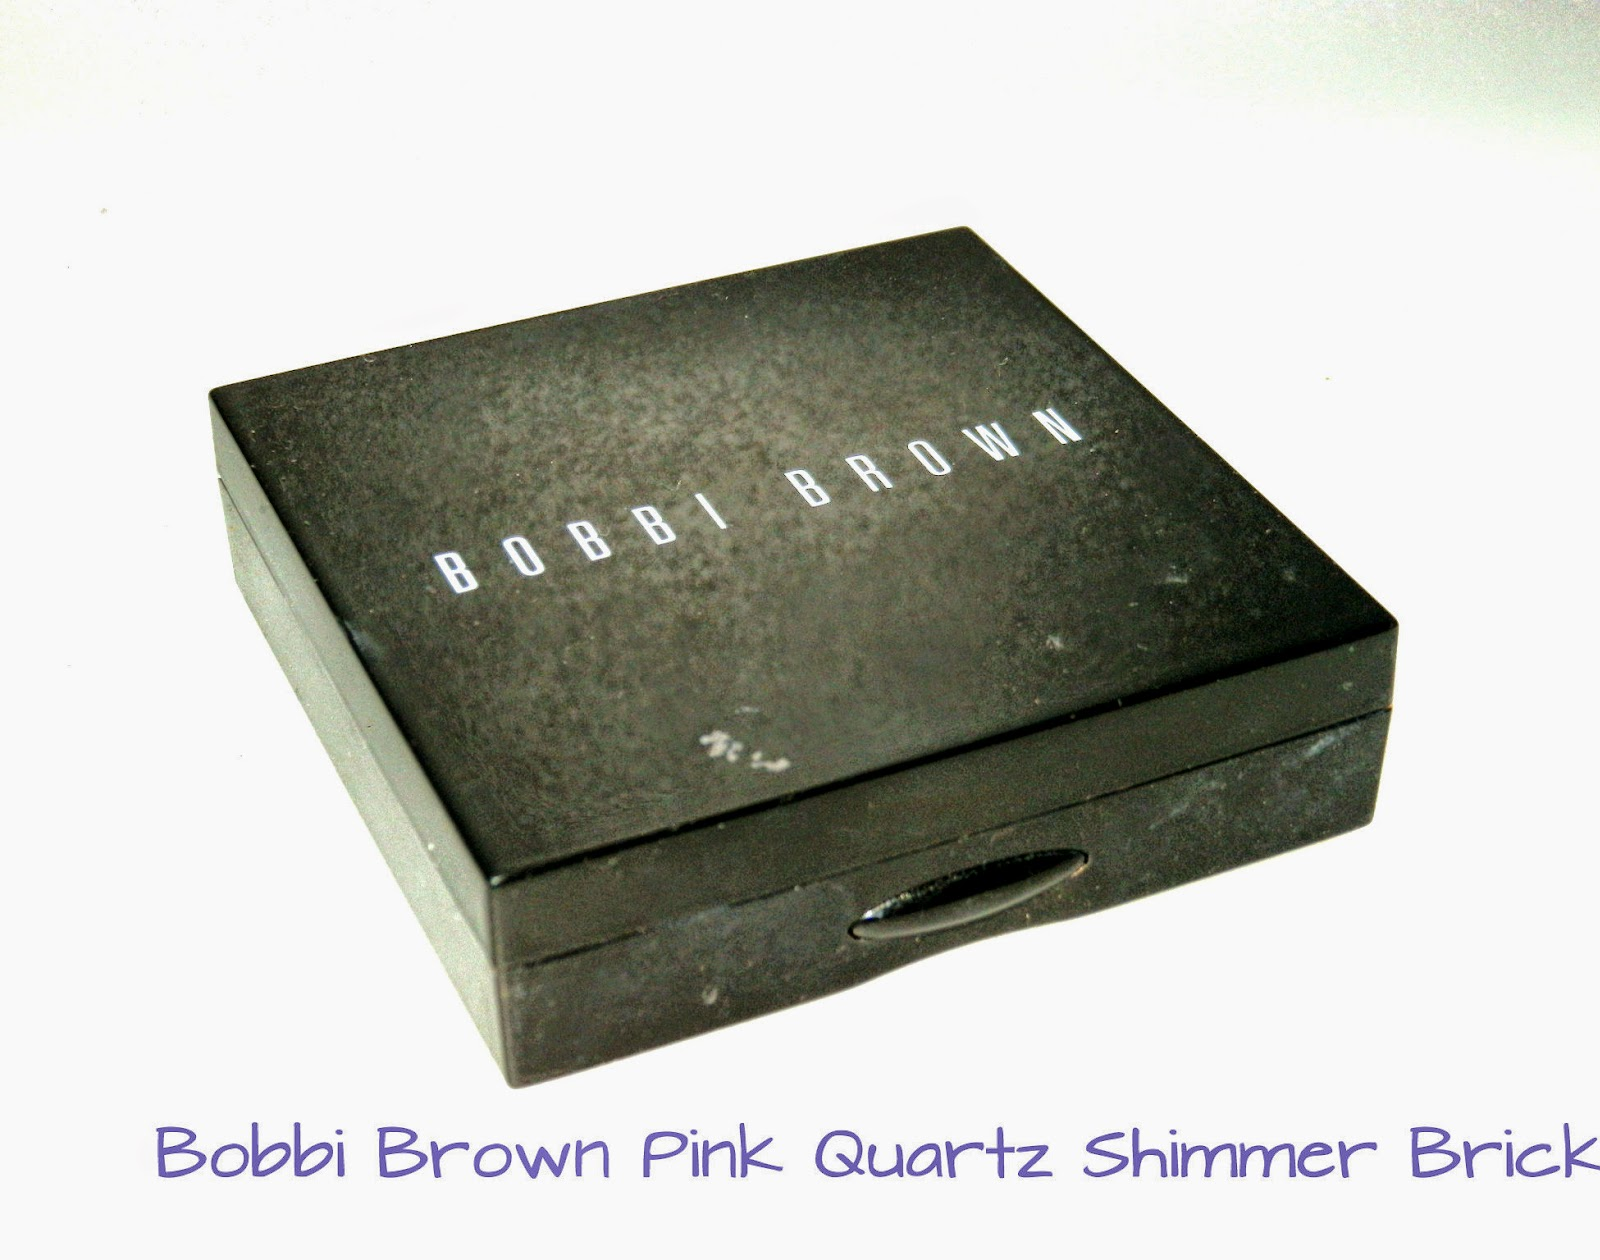 Bobbi Brown Pink Quartz Shimmer Brick Swatches